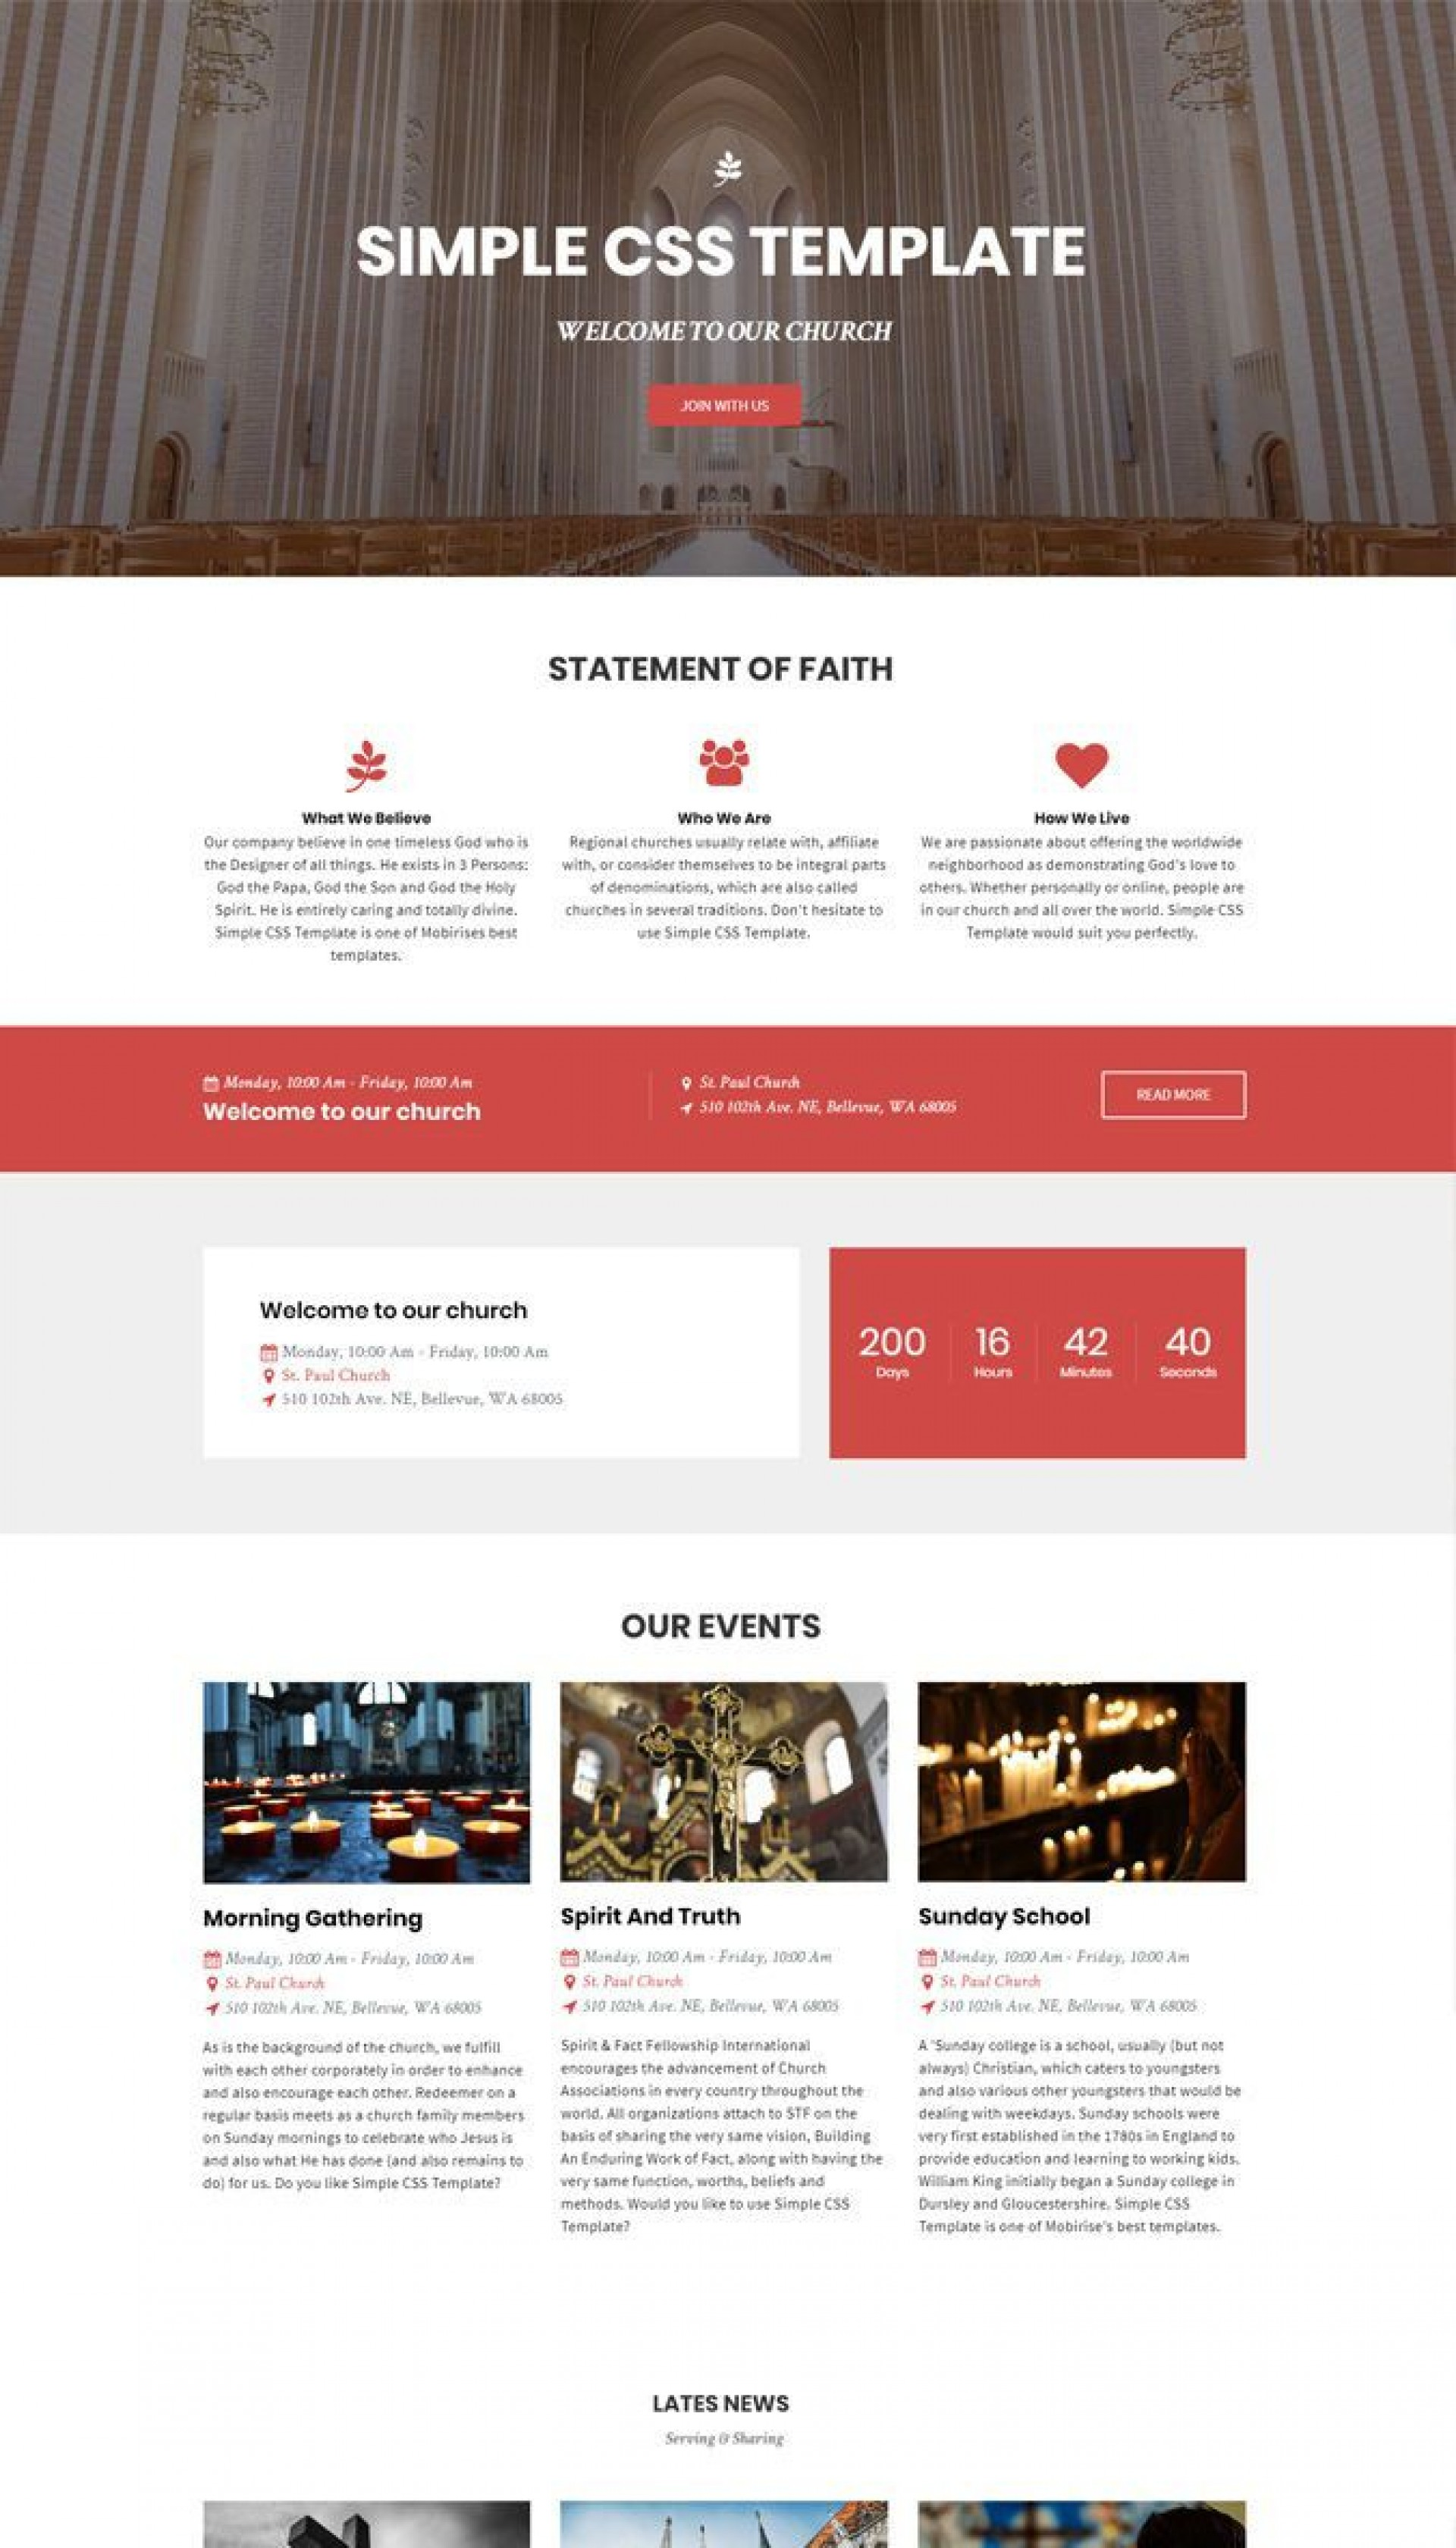 002 Marvelou Website Template Html Cs Free Download Image  Registration Page With Javascript Jquery Responsive Student Form1920